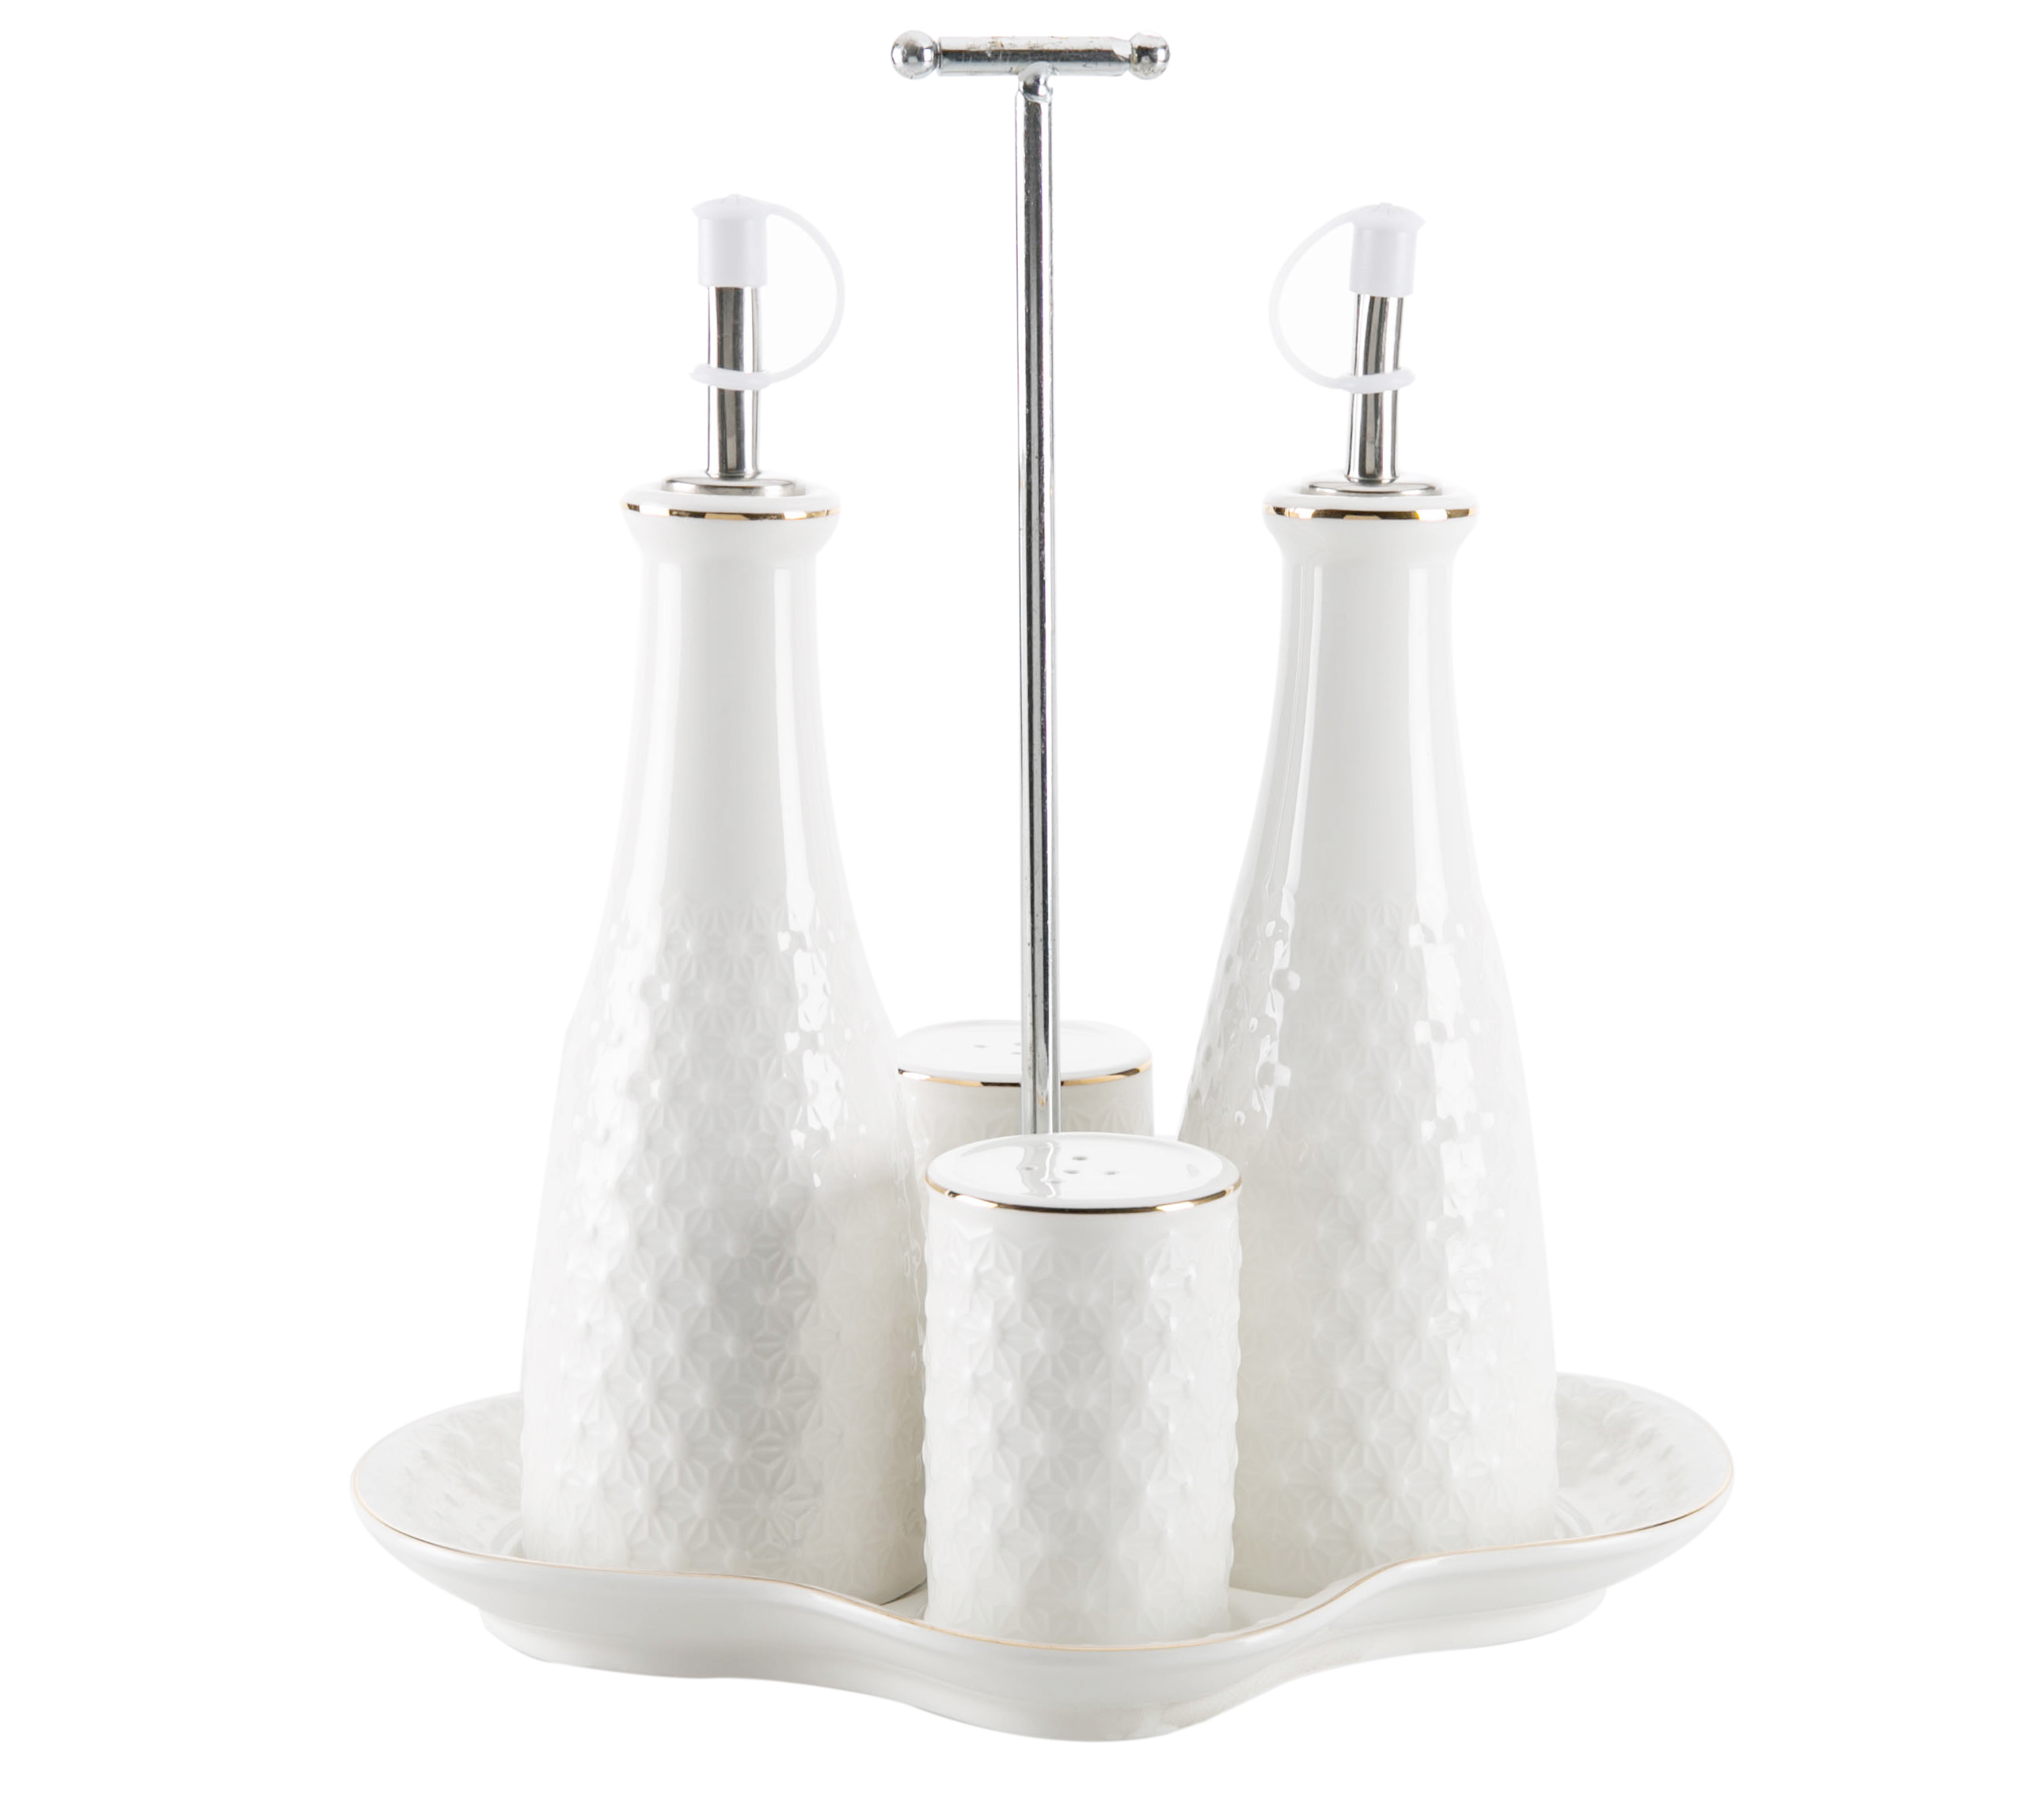 Dot Design SPICE AND OIL 5 PIECE SET